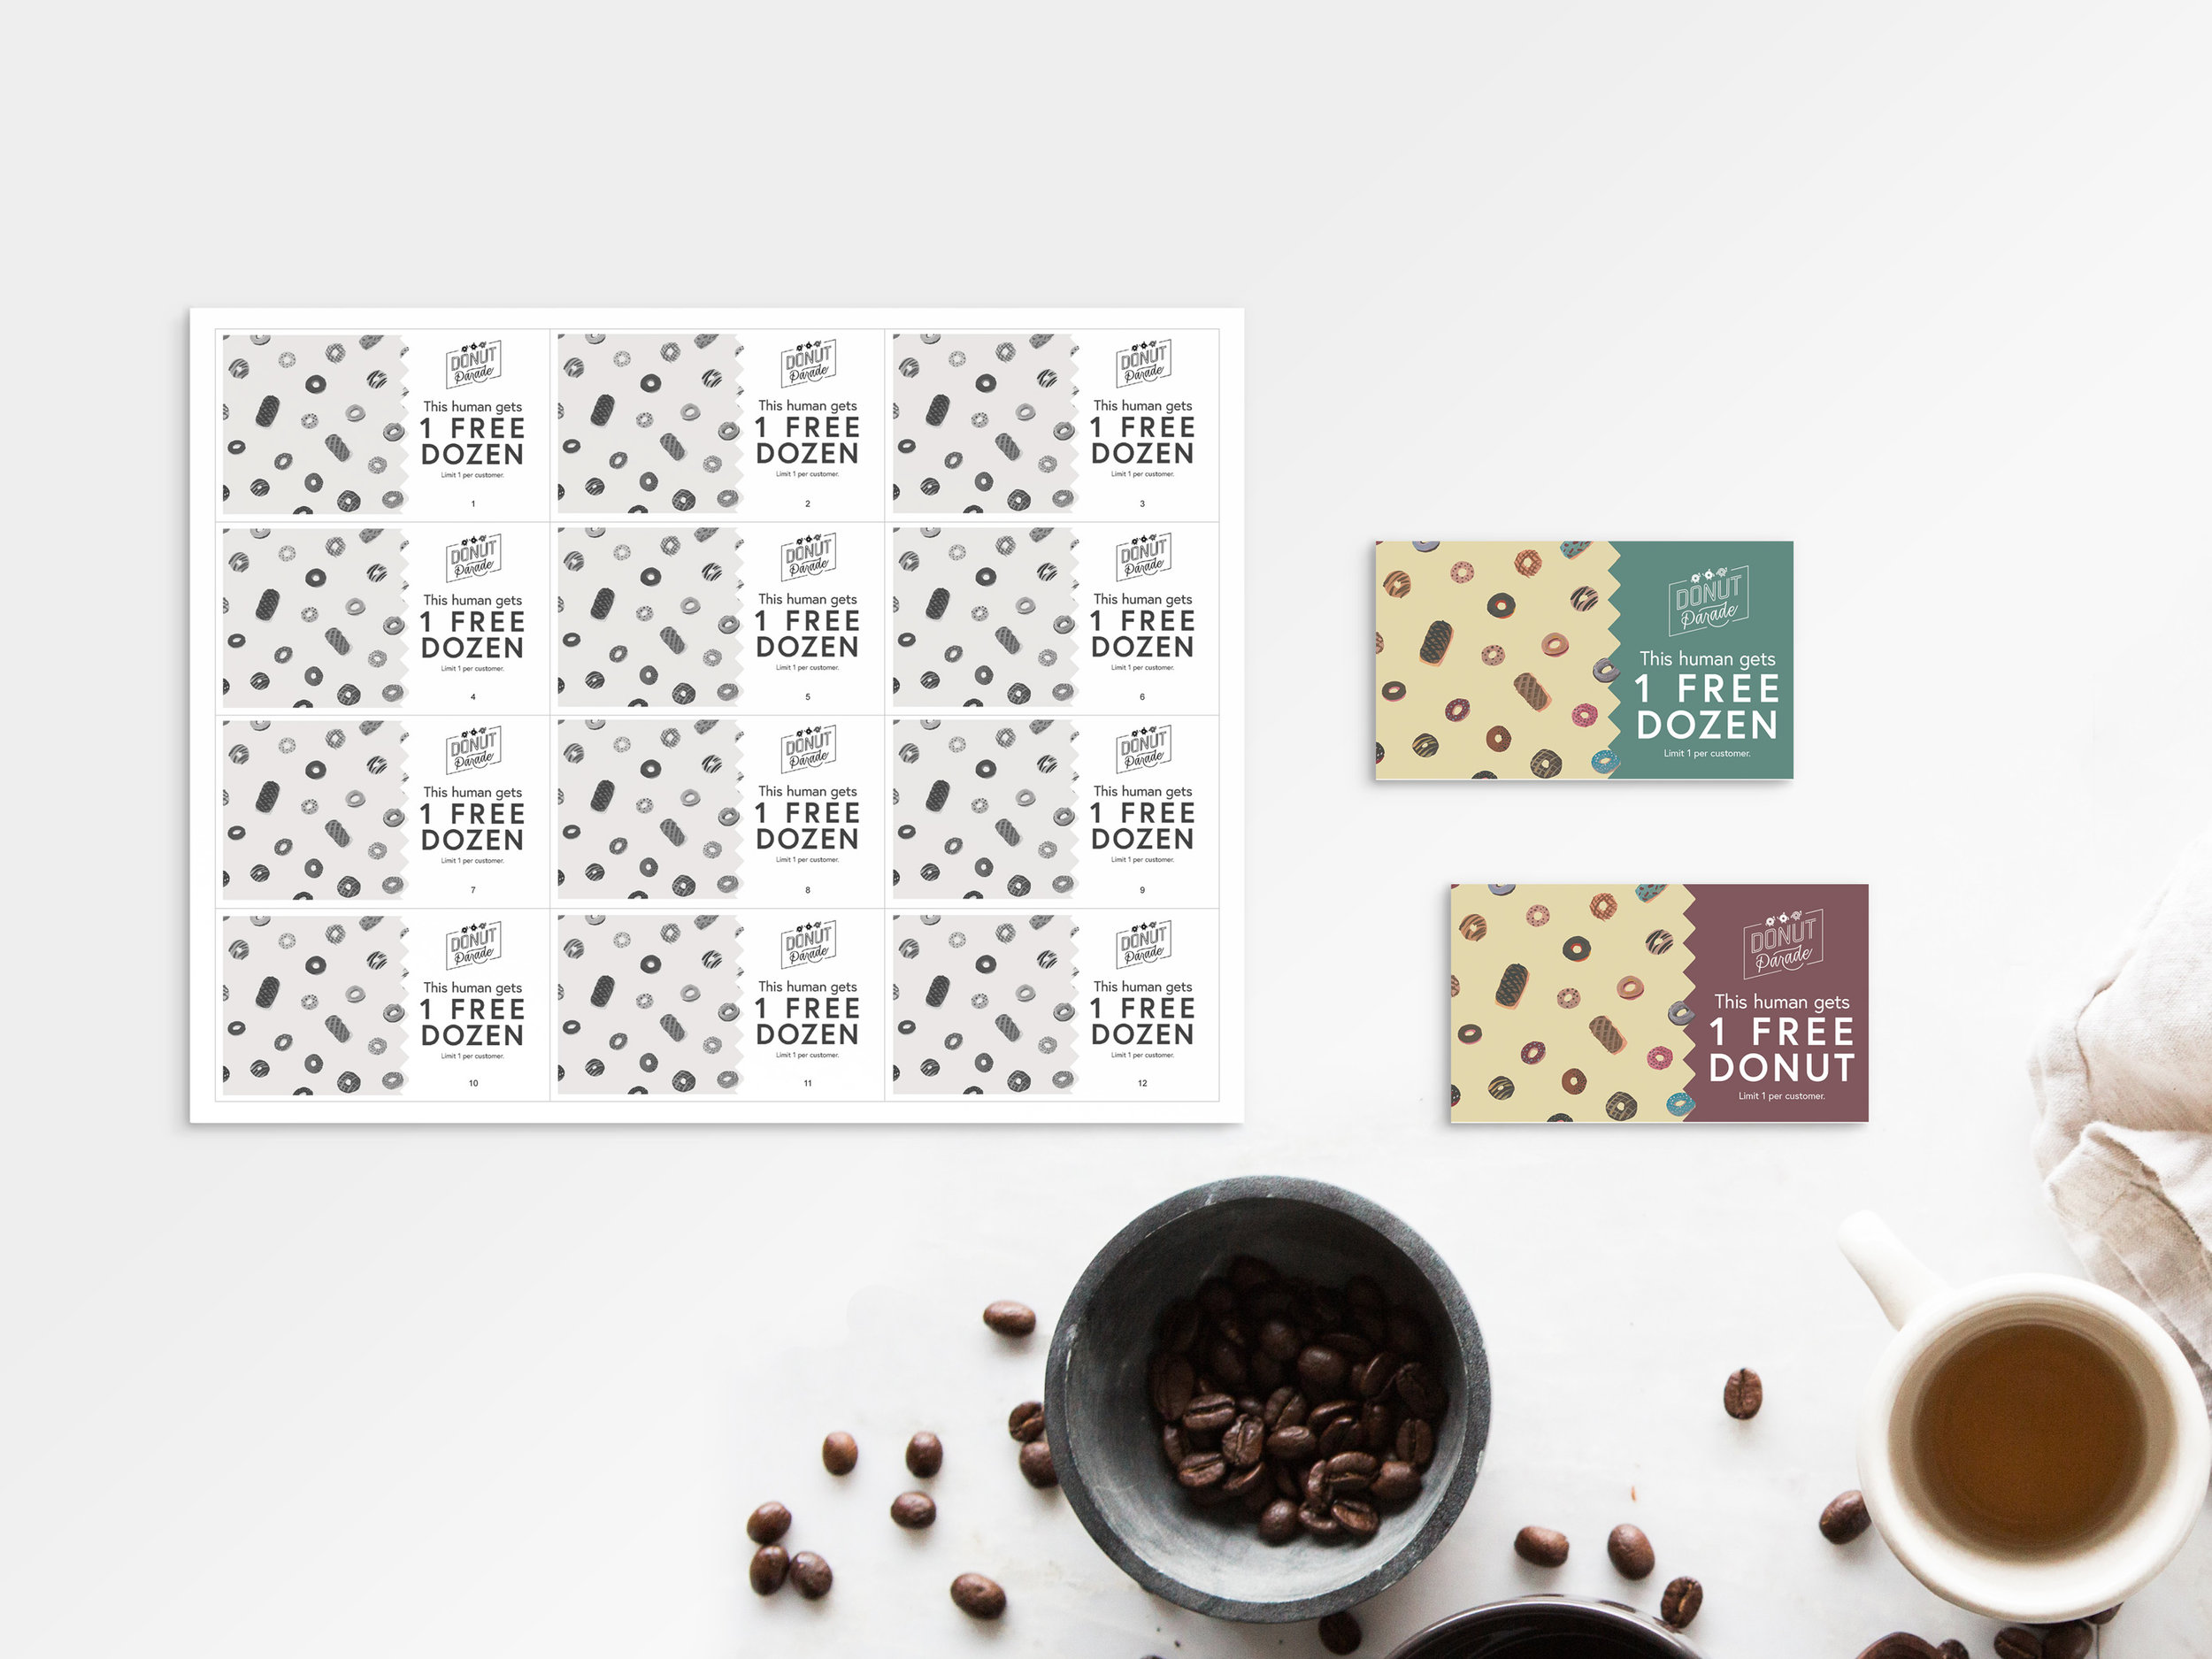 Colored donut coupons, plus black and white home-printable versions